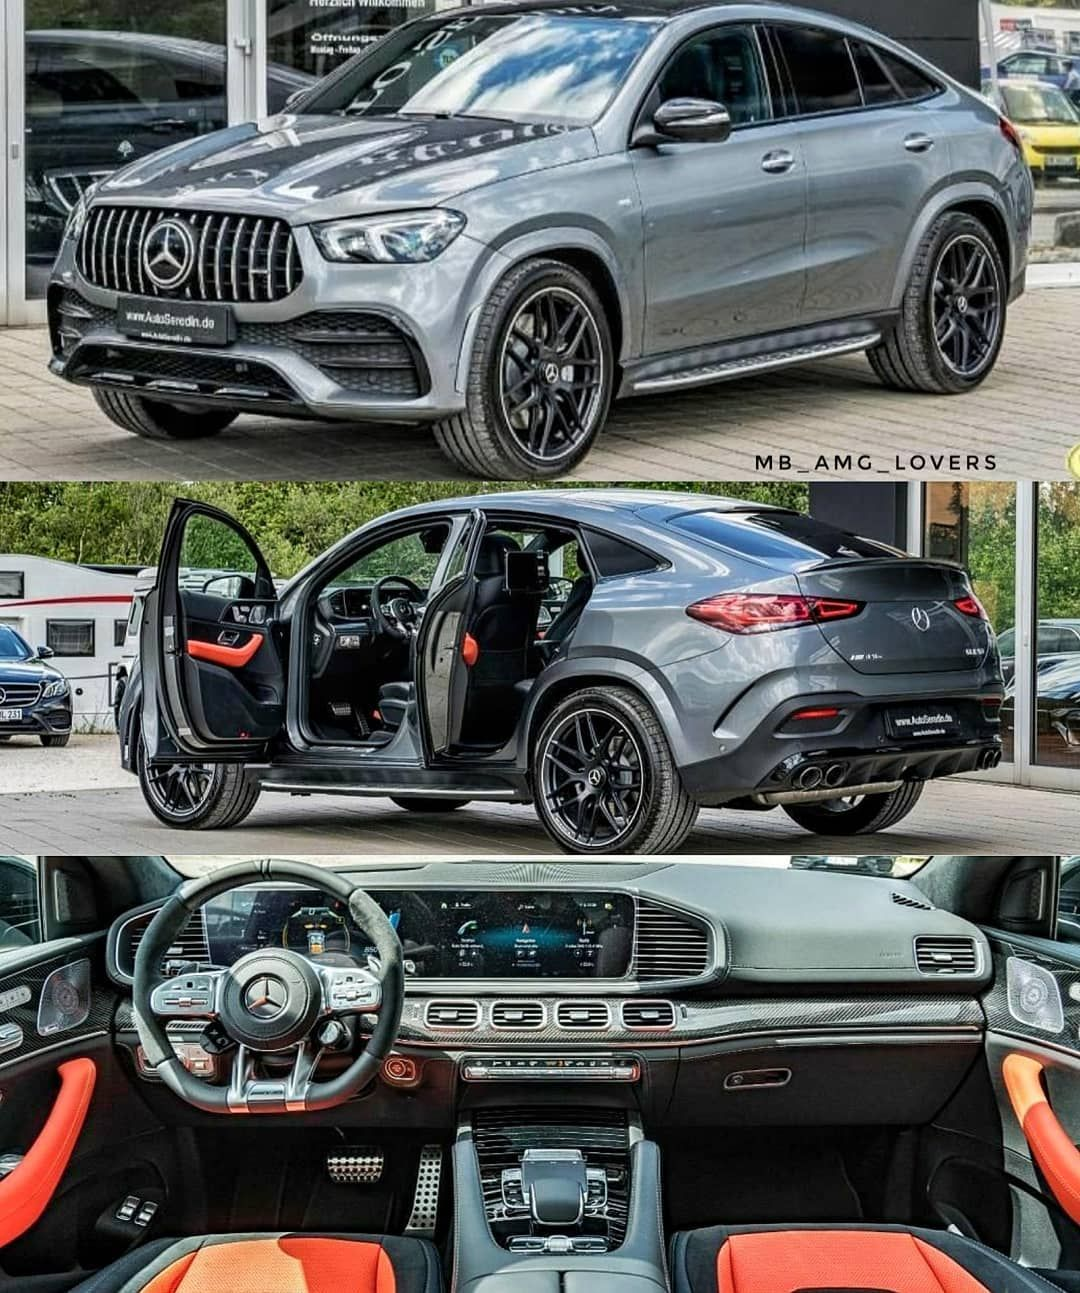 "Photo of Mercedes Benz //AMG Lovers 💙 on Instagram: ""PERFECT 😍😍😍 Wouldn't mind owning such a beast in very cool specs in and out💣 AMG GLE53 Coupe at @autoseredingermany"""